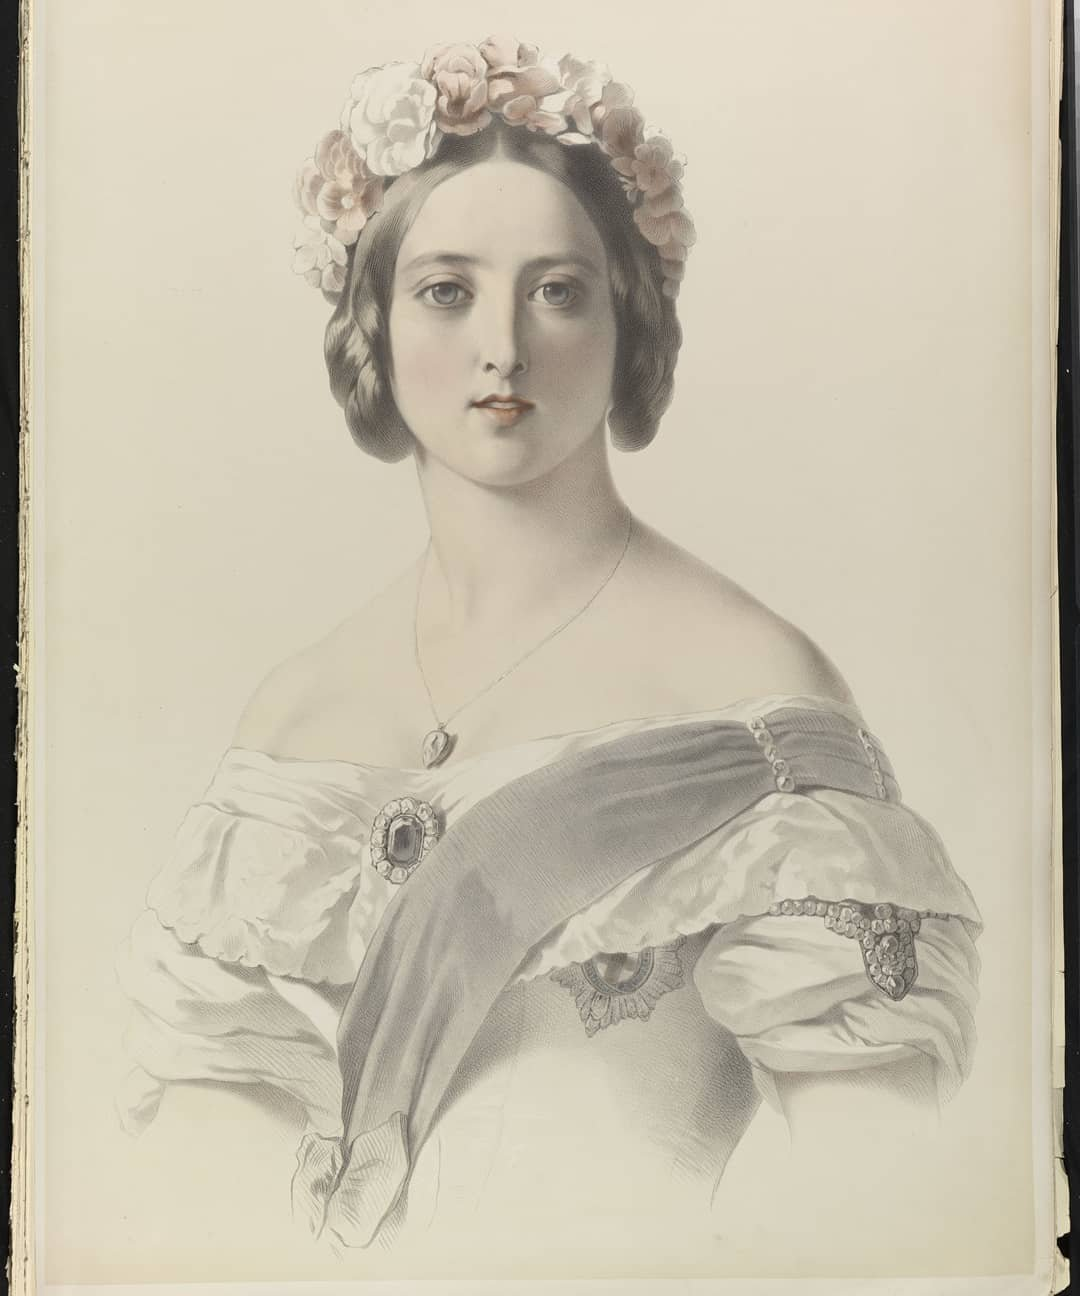 Émile Lassalle lithograph of young Queen Victoria